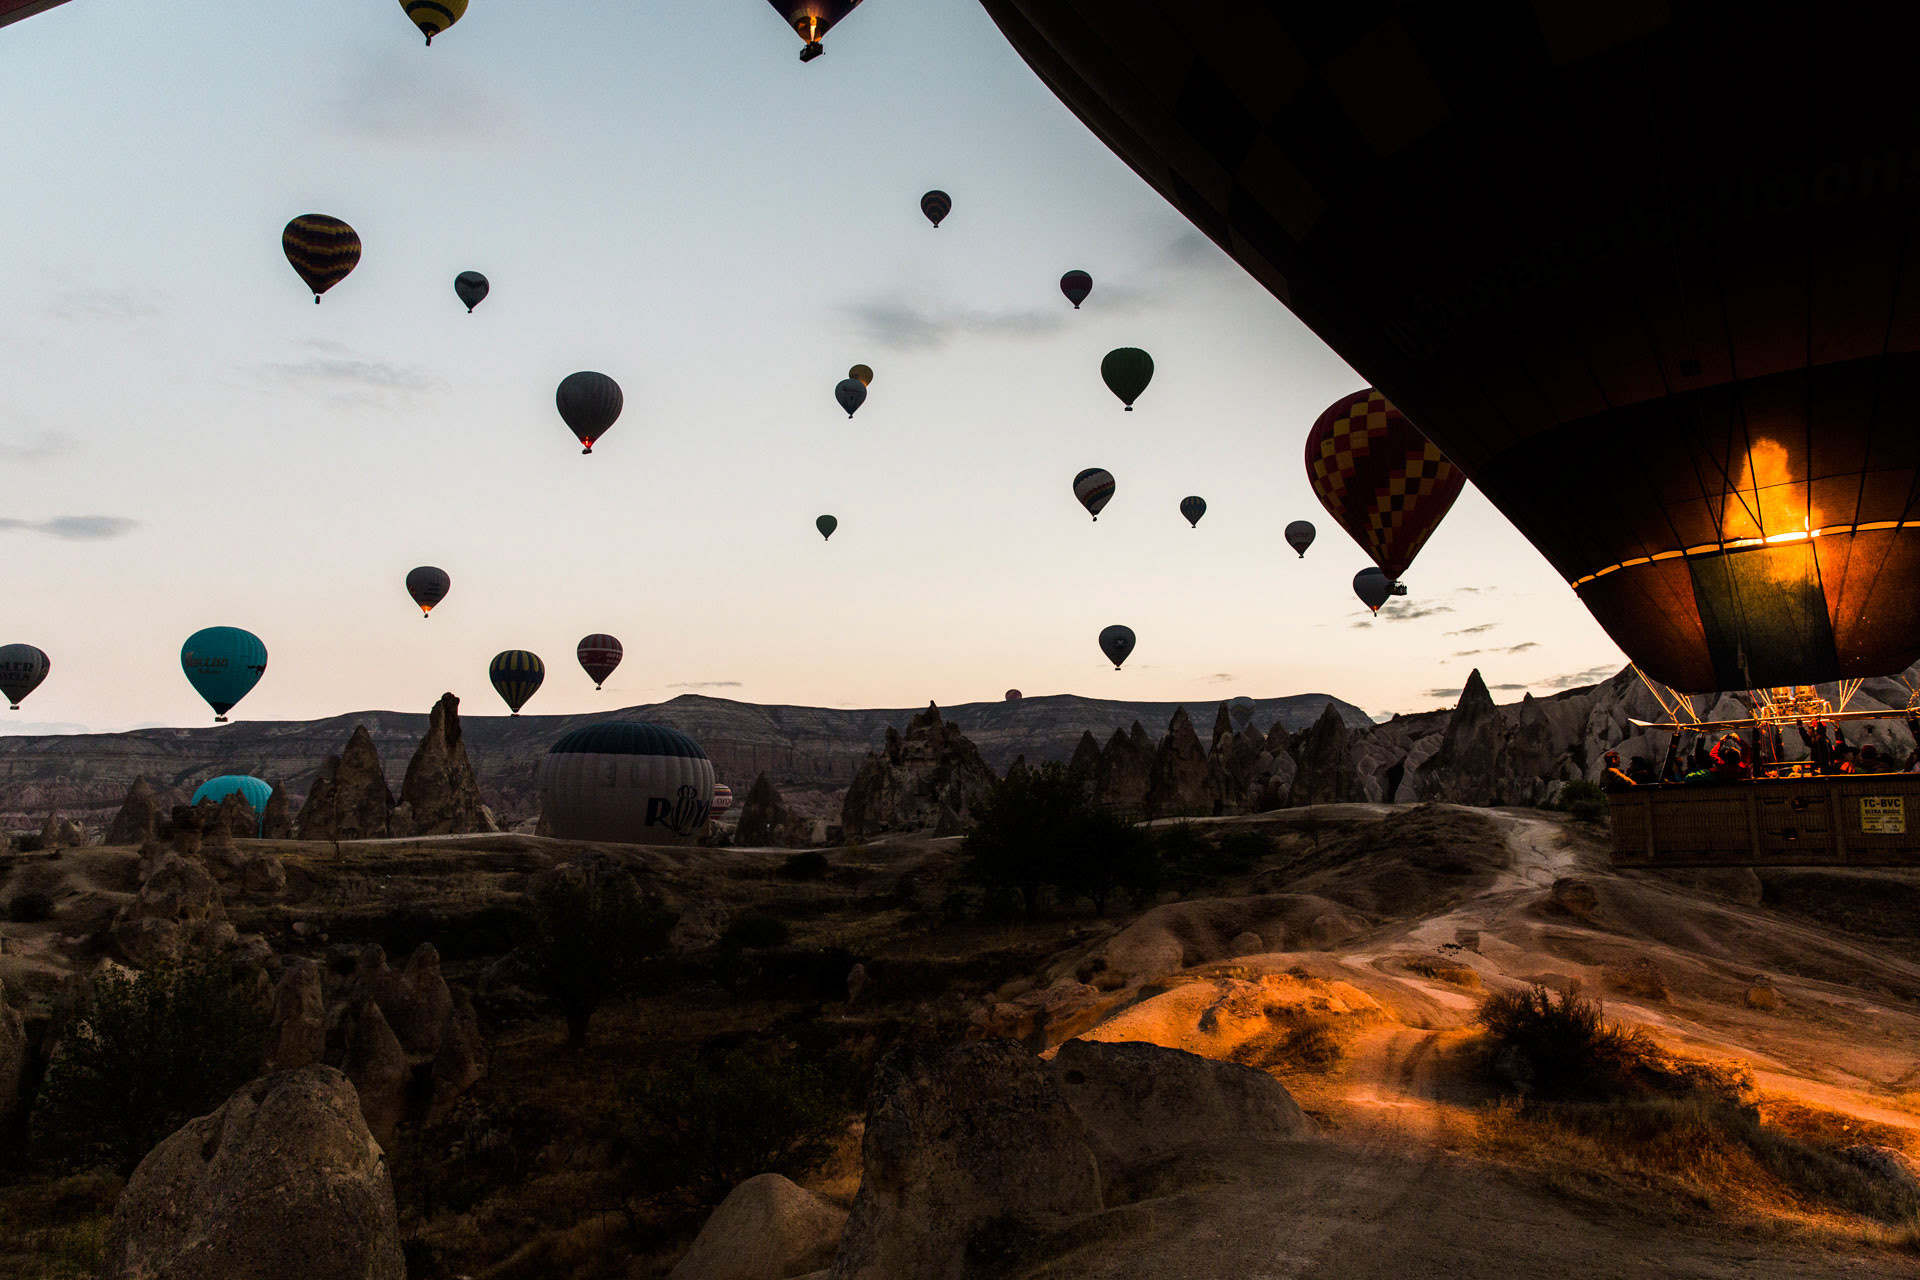 attilio fiumarella architectural and documentary photographer in short essay the turkey s landscape from the black sea to the cappadocia region